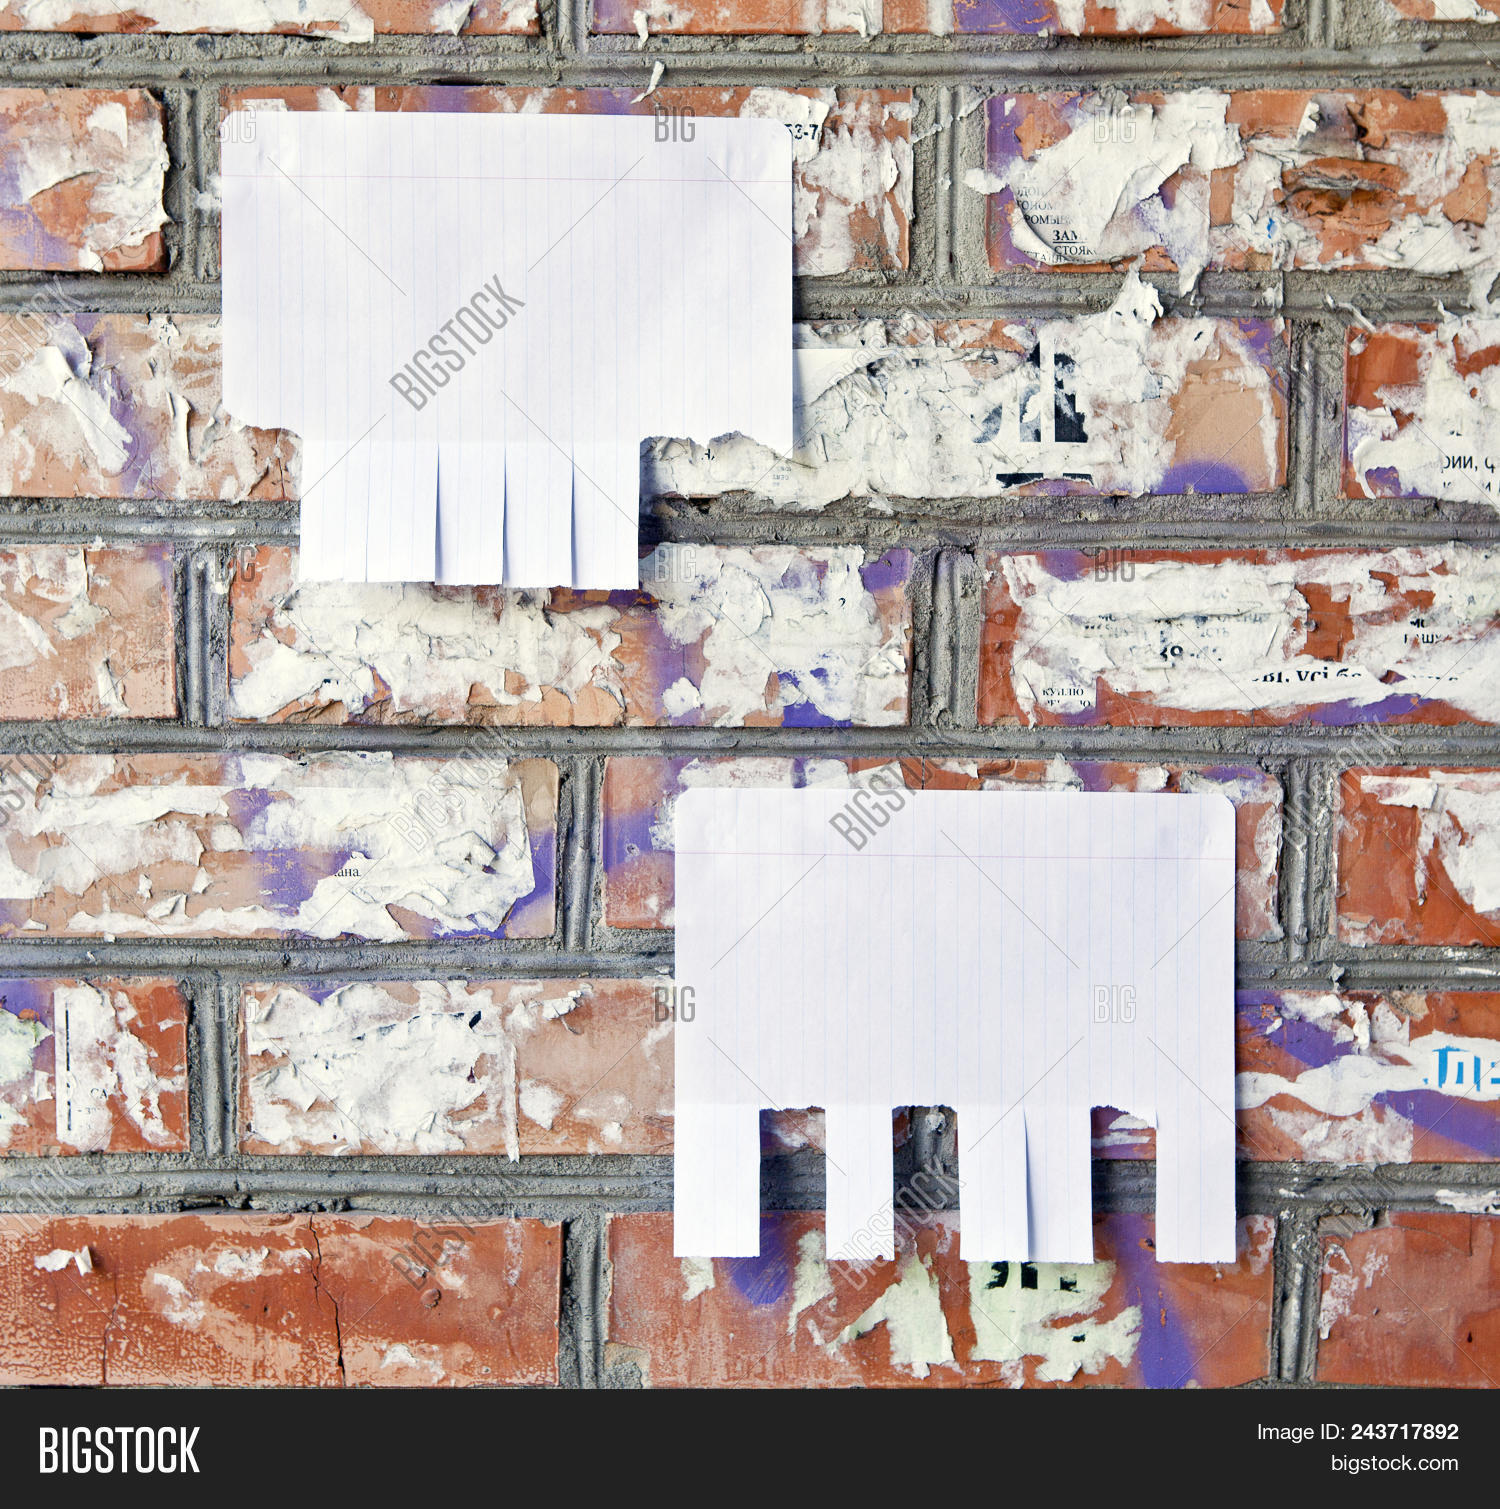 Blank White Paper Tear Off Tabs Image & Photo | Bigstock